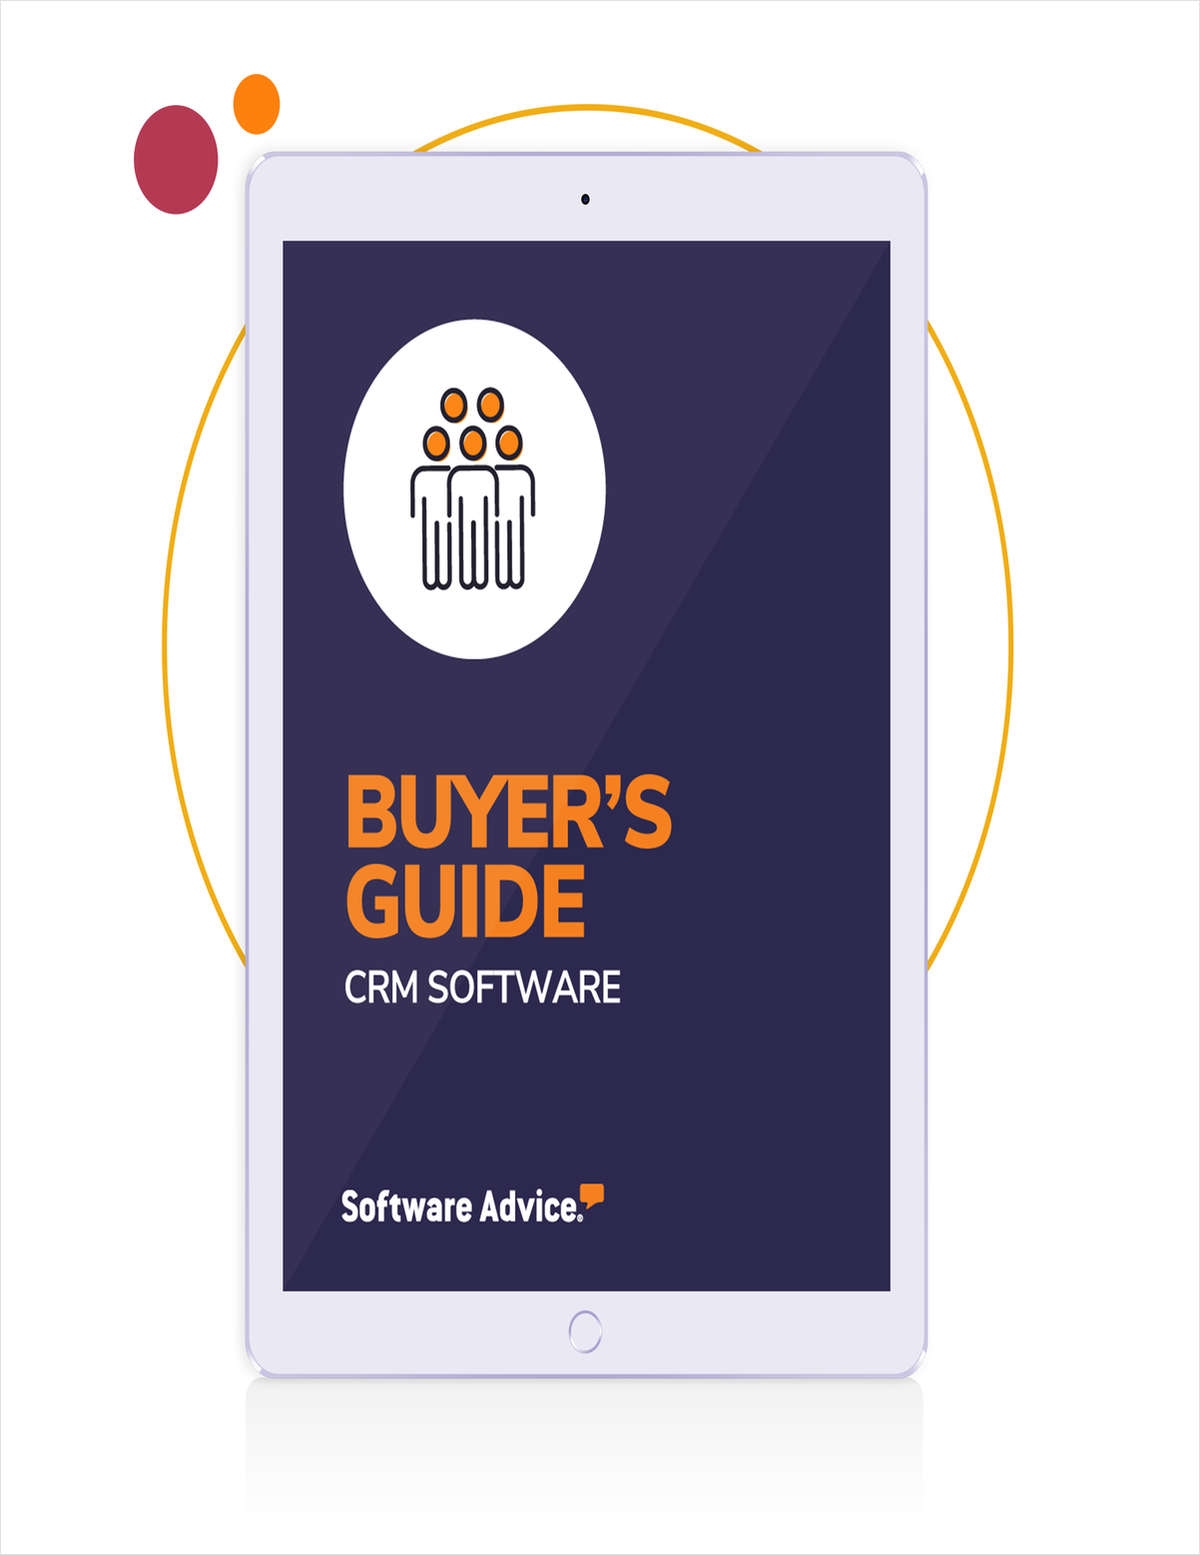 Find Your Perfect CRM Software Match in 2021 With This Guide